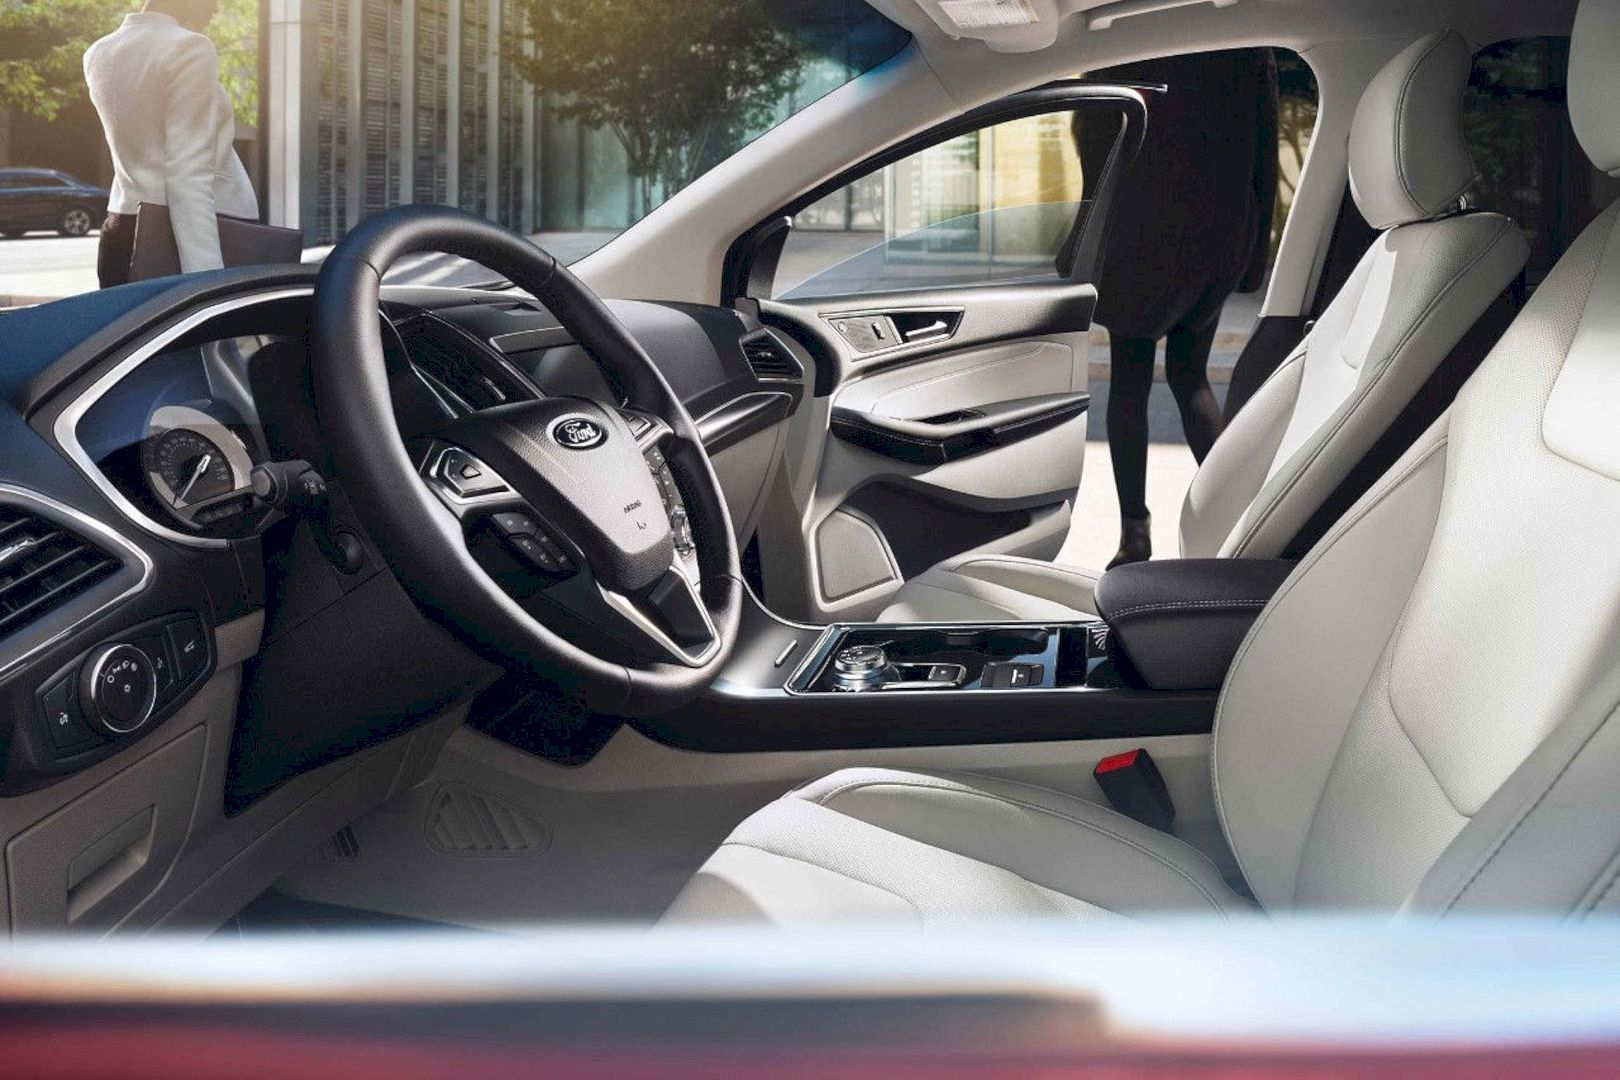 The Latest  Ford Edge Smart New Look Smart New Features Https Www Designlisticle Com The Latest  Ford Edge Smart New Look Smart New Features